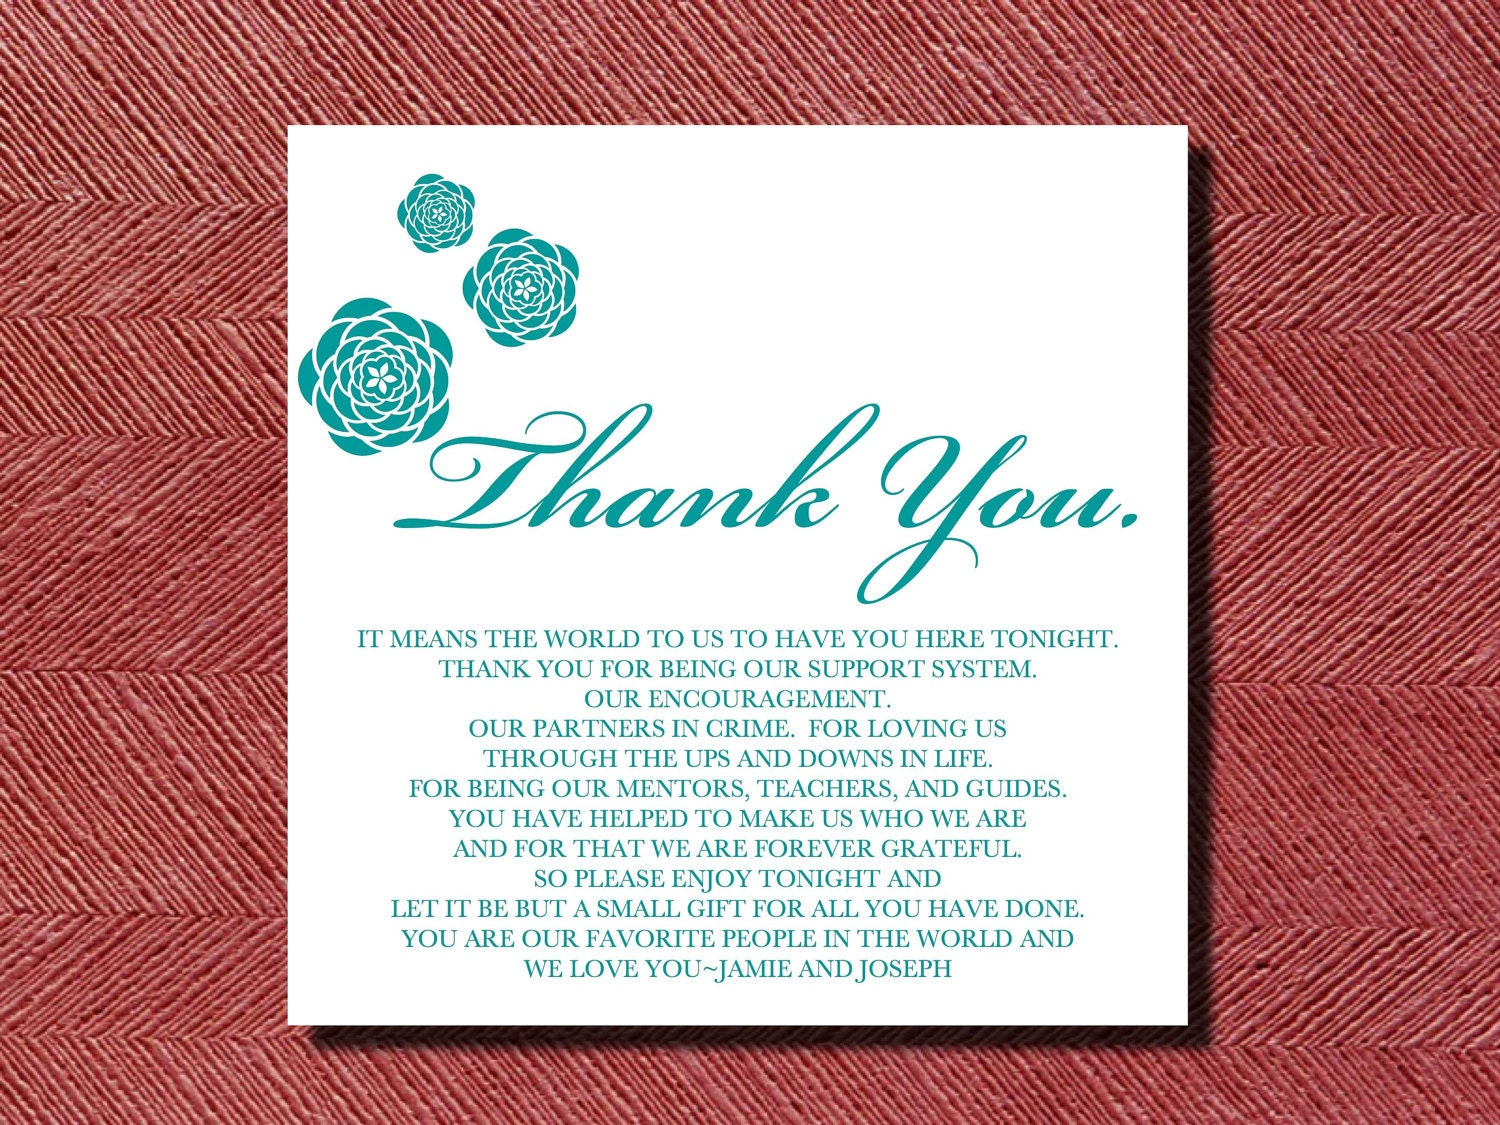 Thank You Message For Wedding Gift Money : Thank You Card Verbiage Wedding. Wedding Thank You Card Wording ...